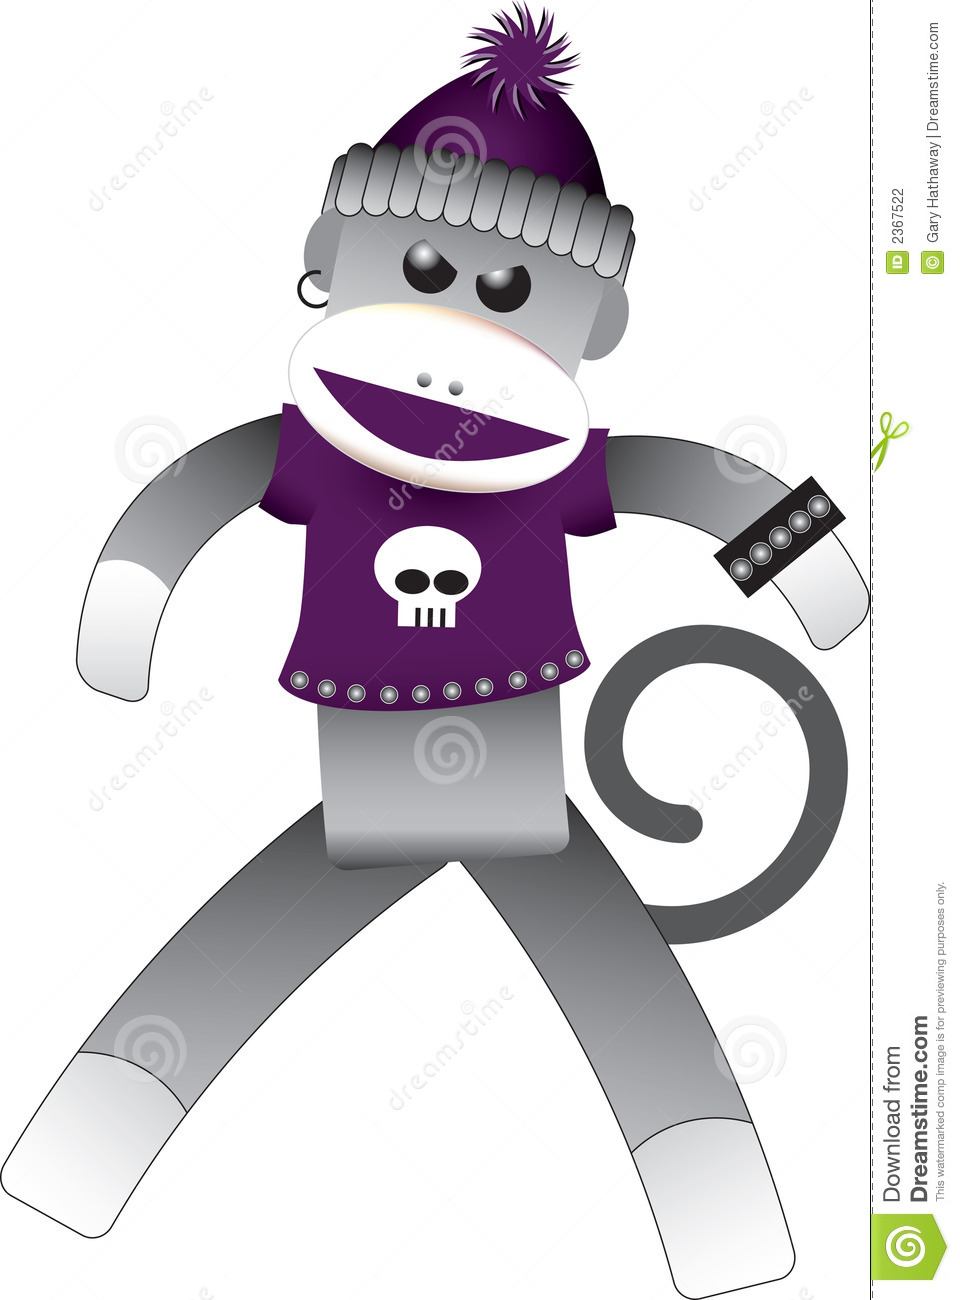 Punk sock monkey wearing a purple t-shirt with a skull, an earring and ...